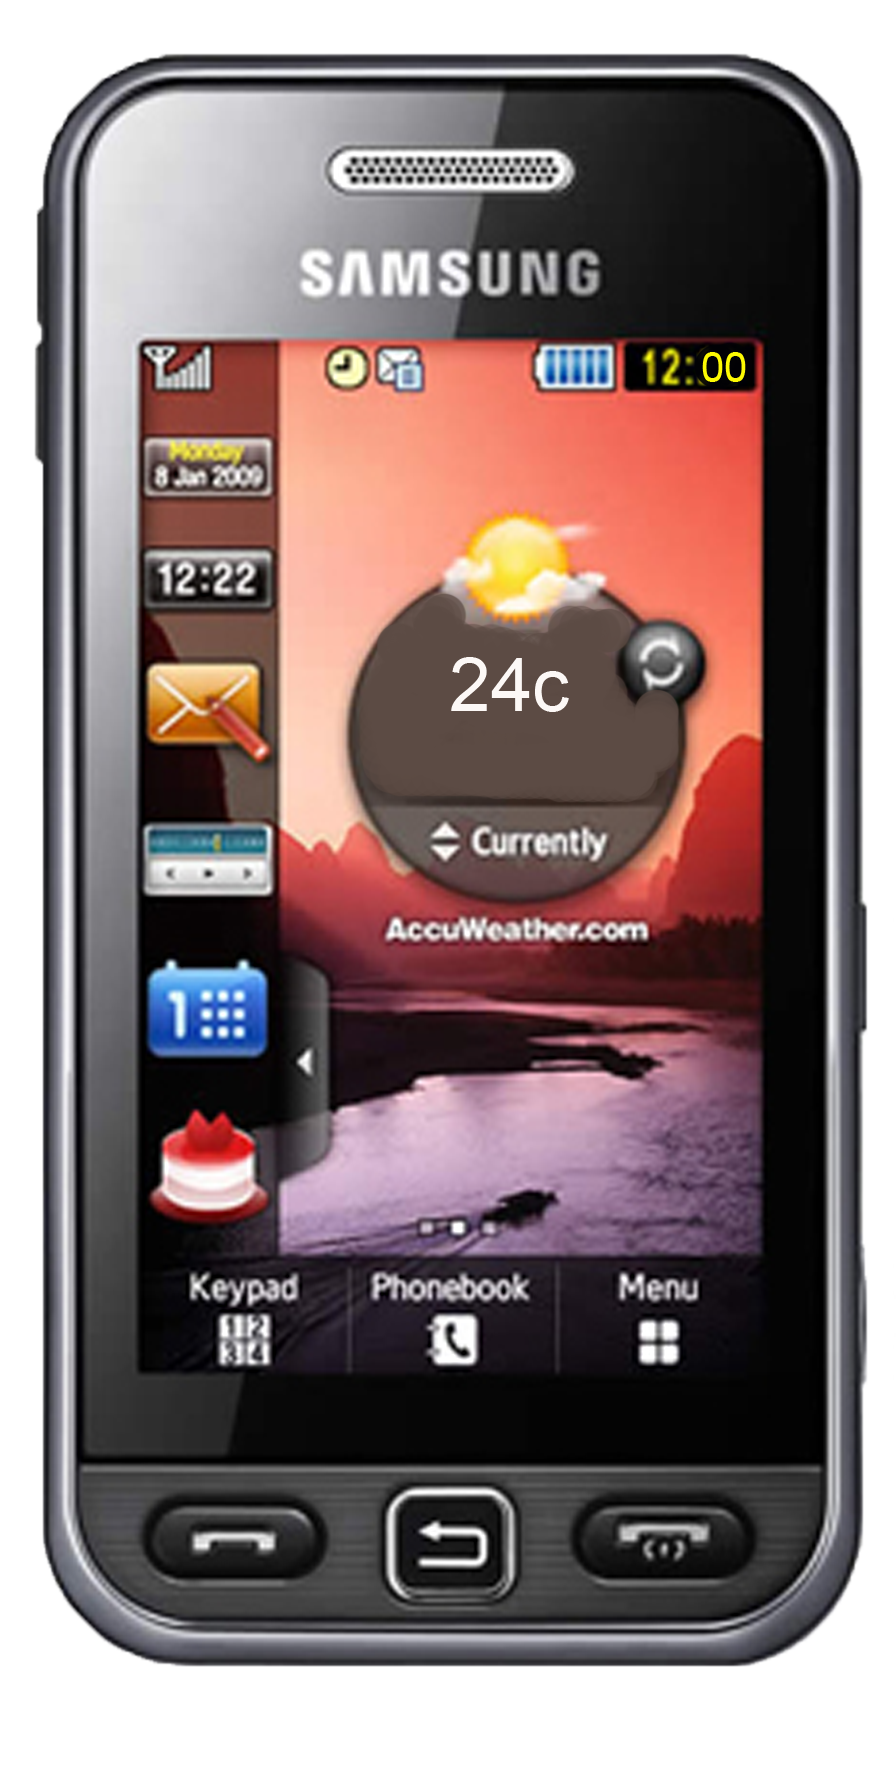 Samsung Mobile Phone Png Pic PNG Image - Samsung Mobile Phone PNG